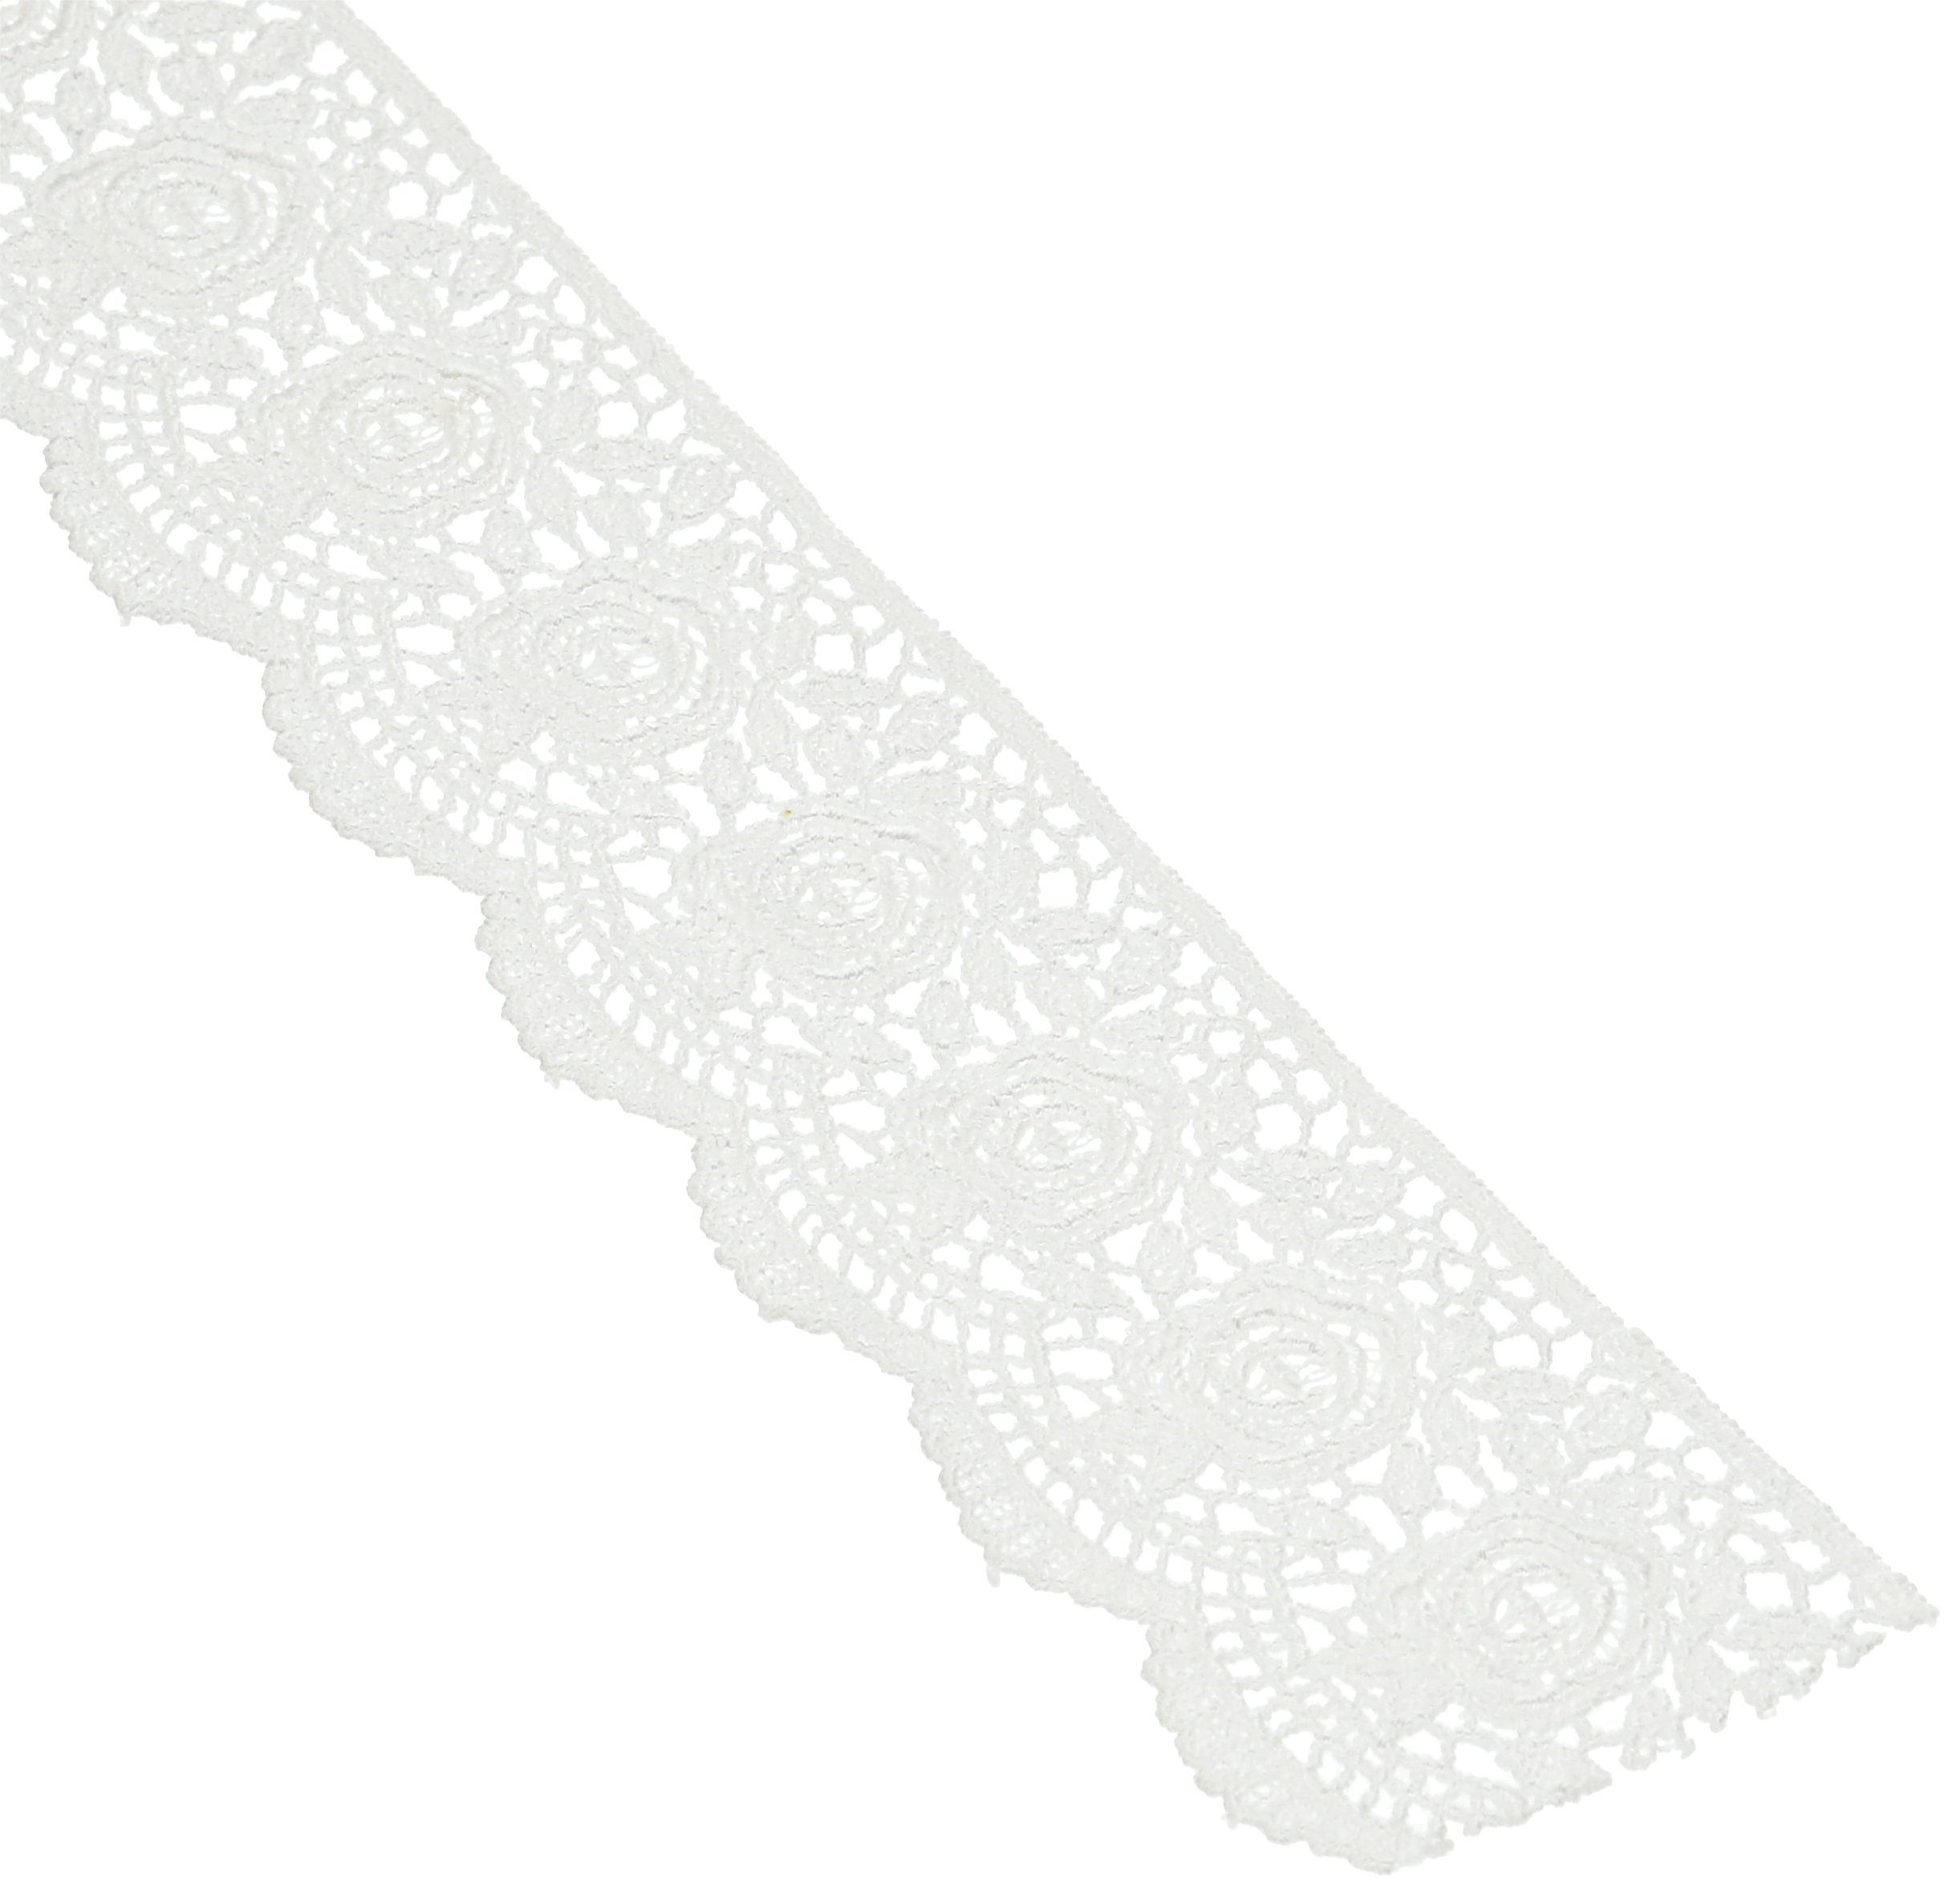 Wright Products Scalloped Rose Venice Lace 1-3/4'' Wide 10 Yards-White by Wright Products